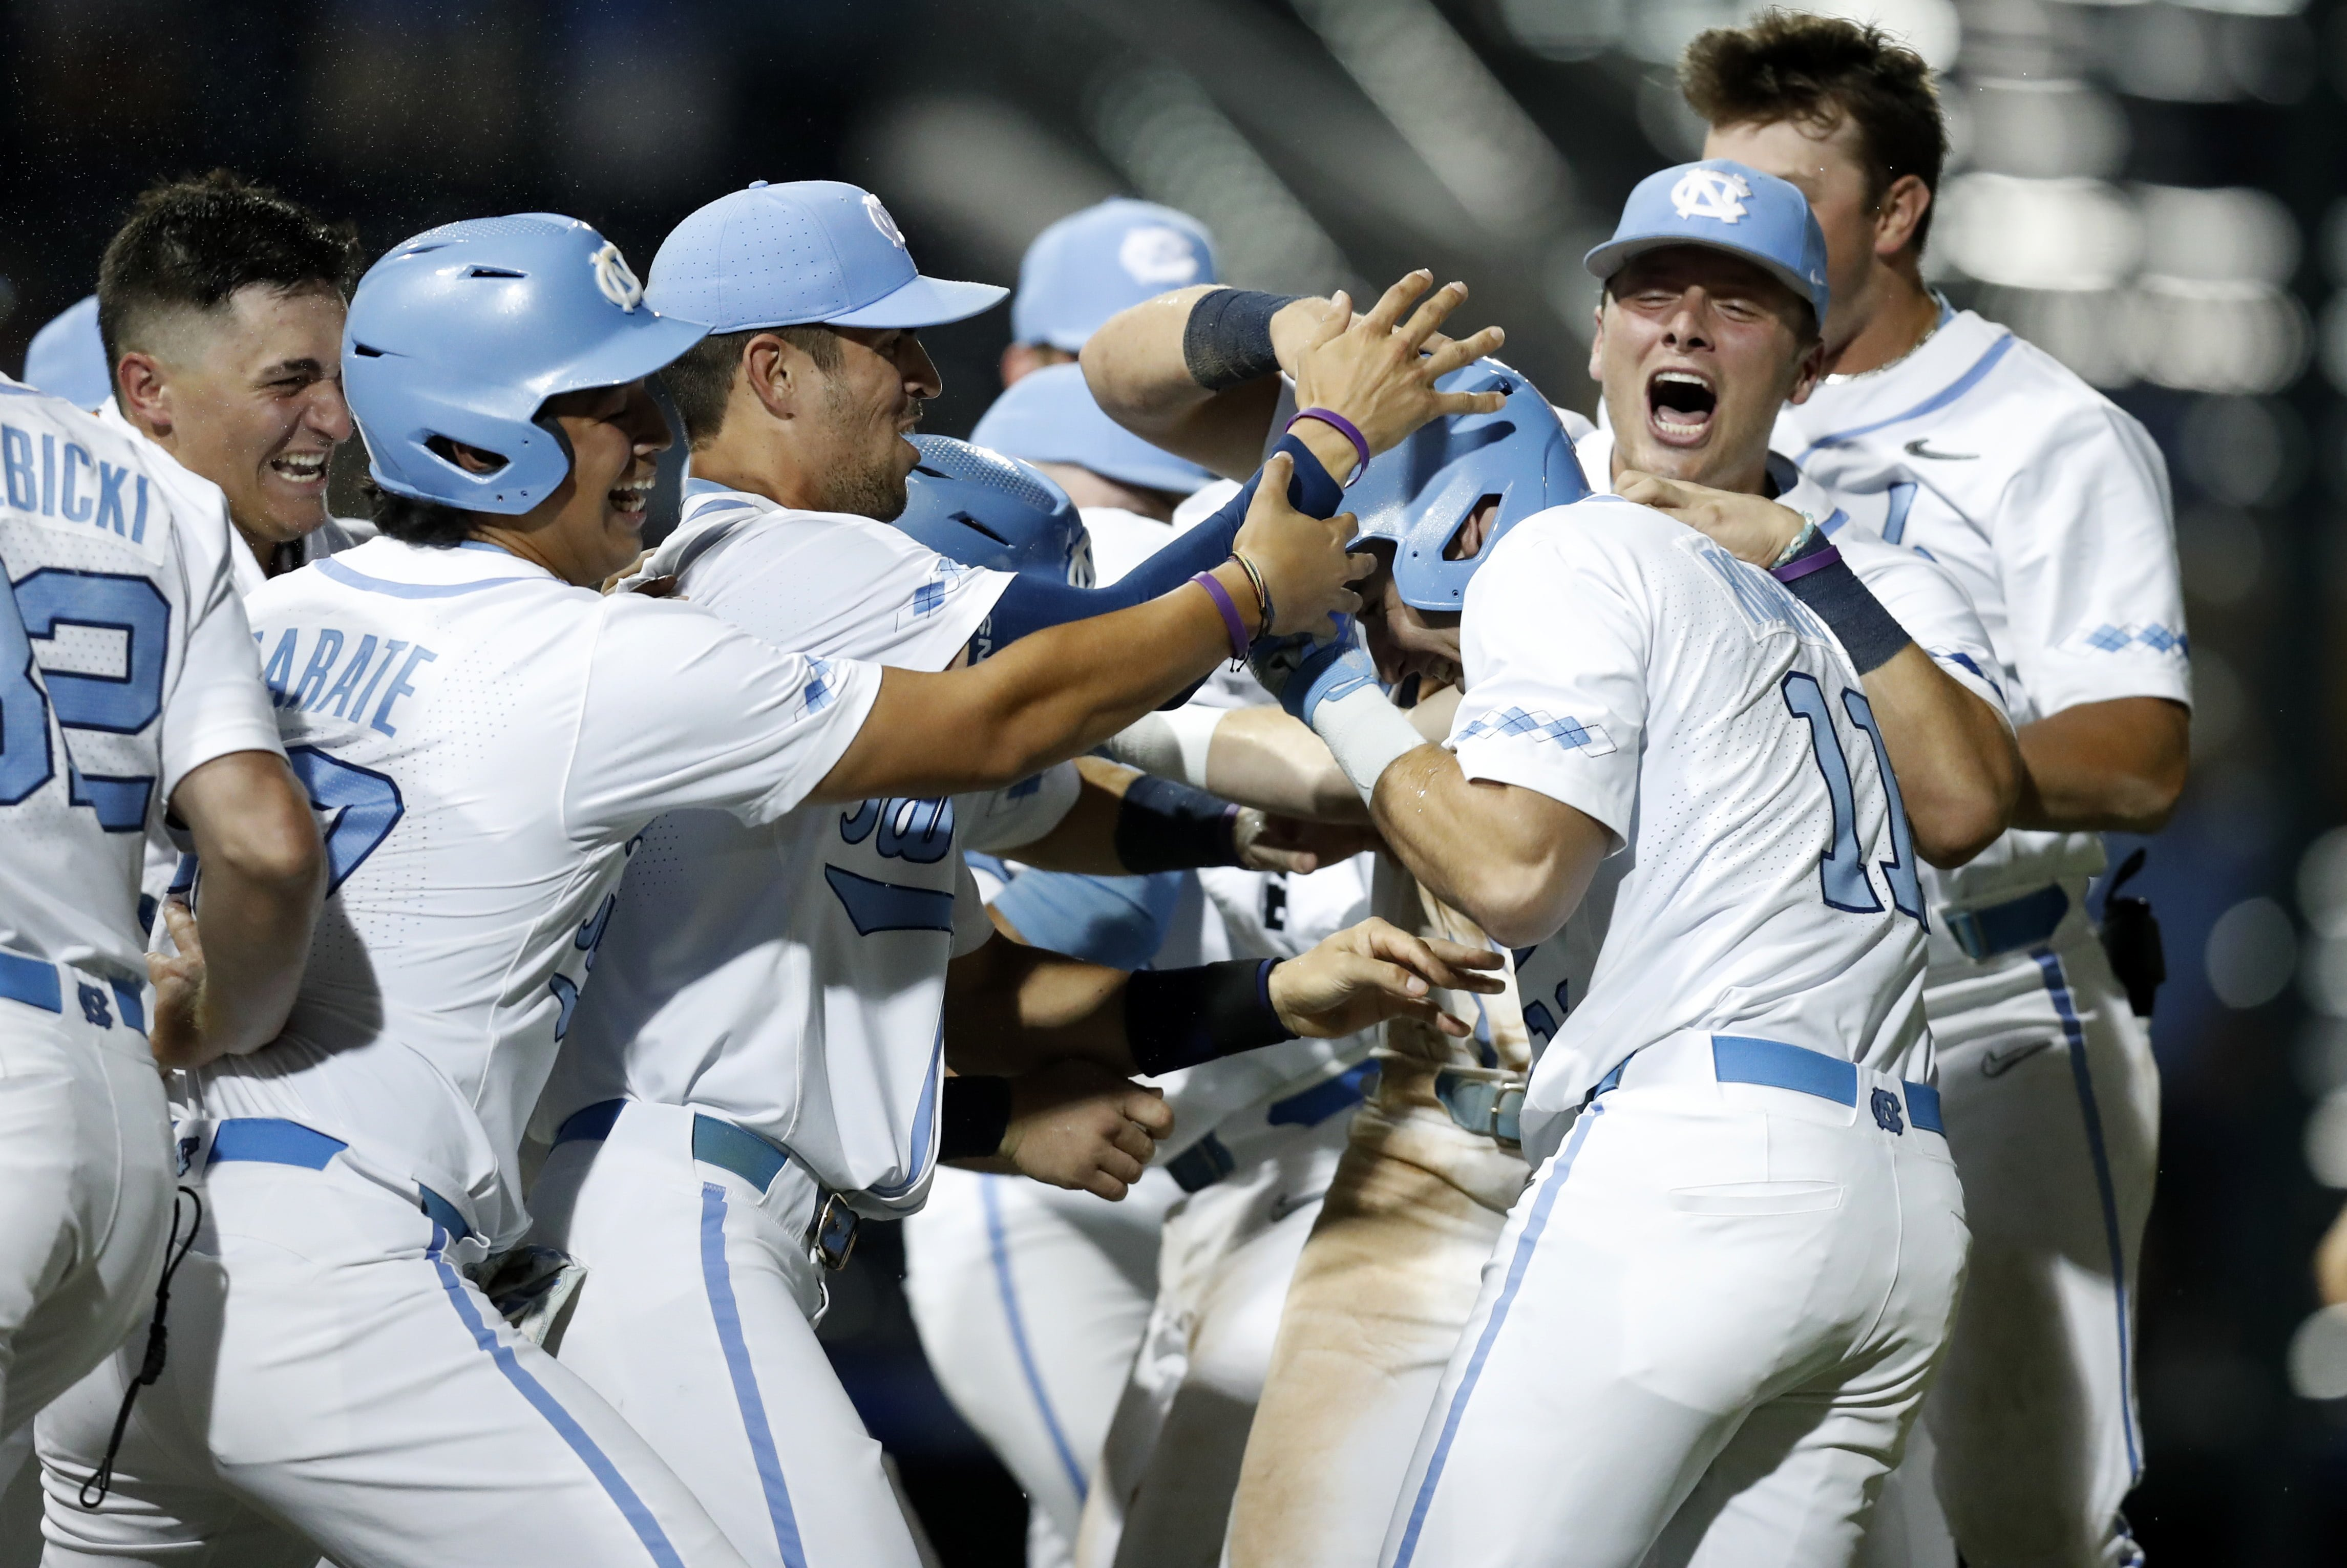 Tenth Inning Rally Keeps UNC In Contention At ACC Baseball